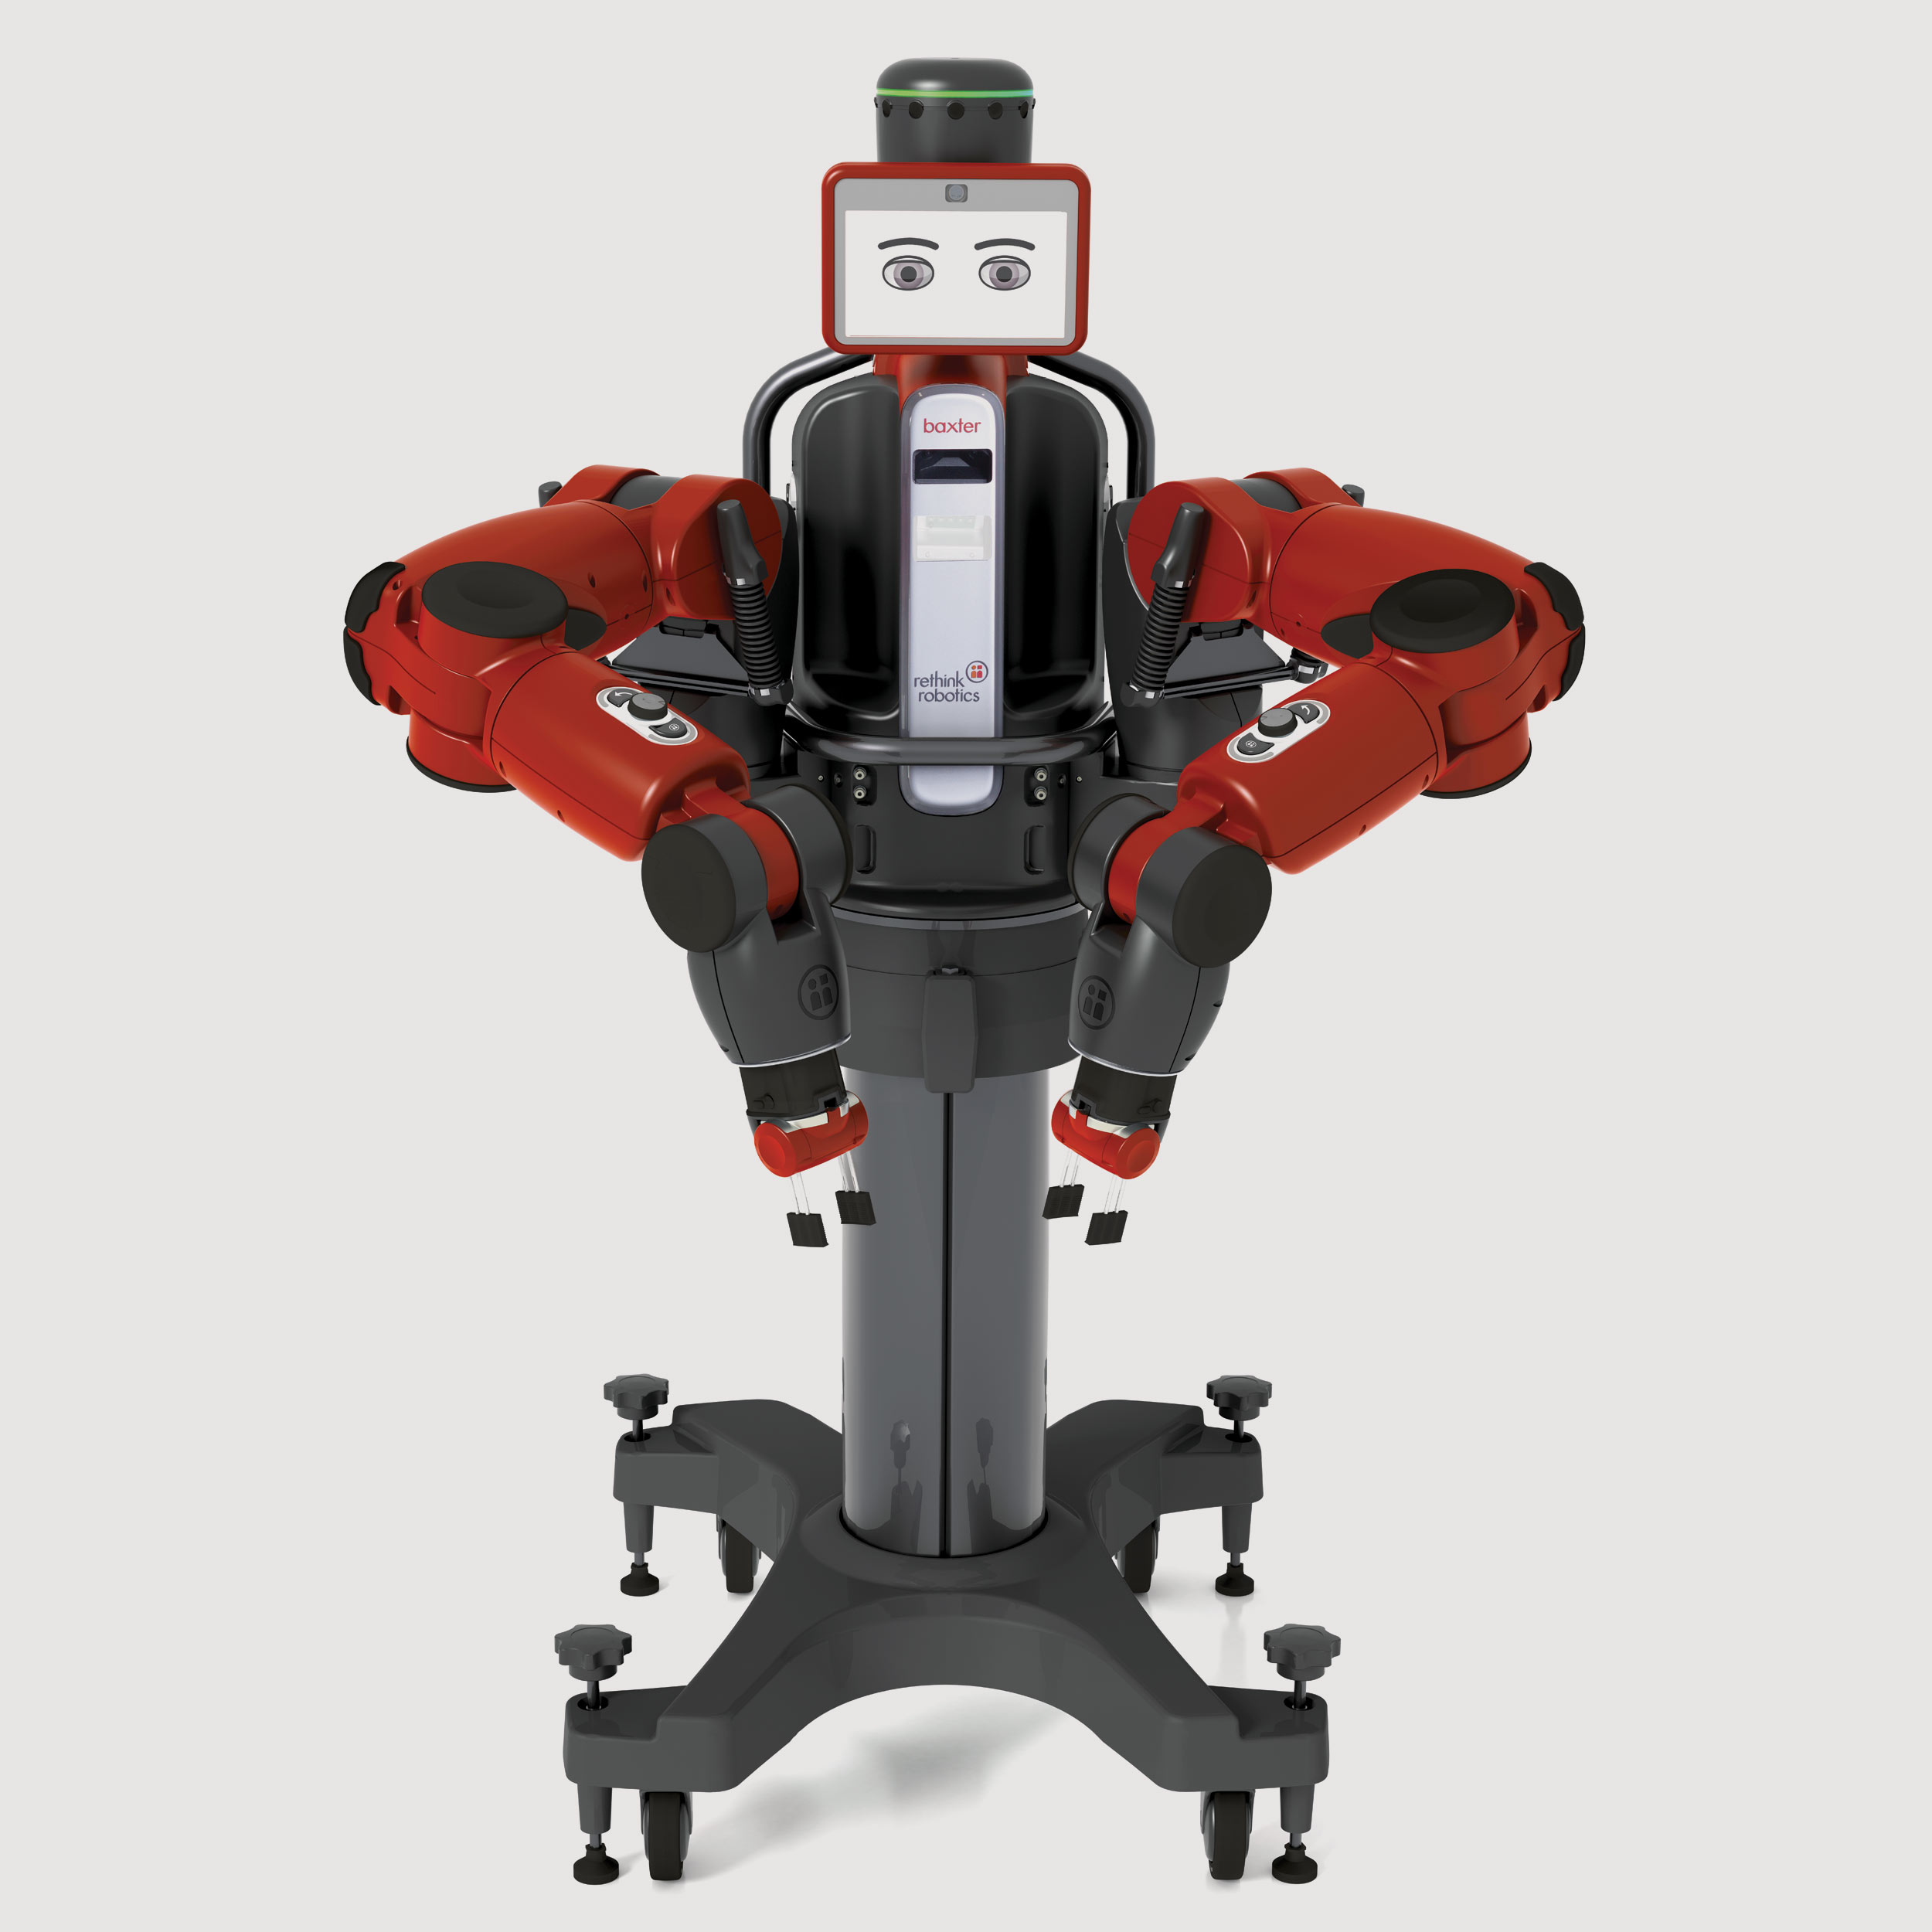 baxter robot industrial manufacturing